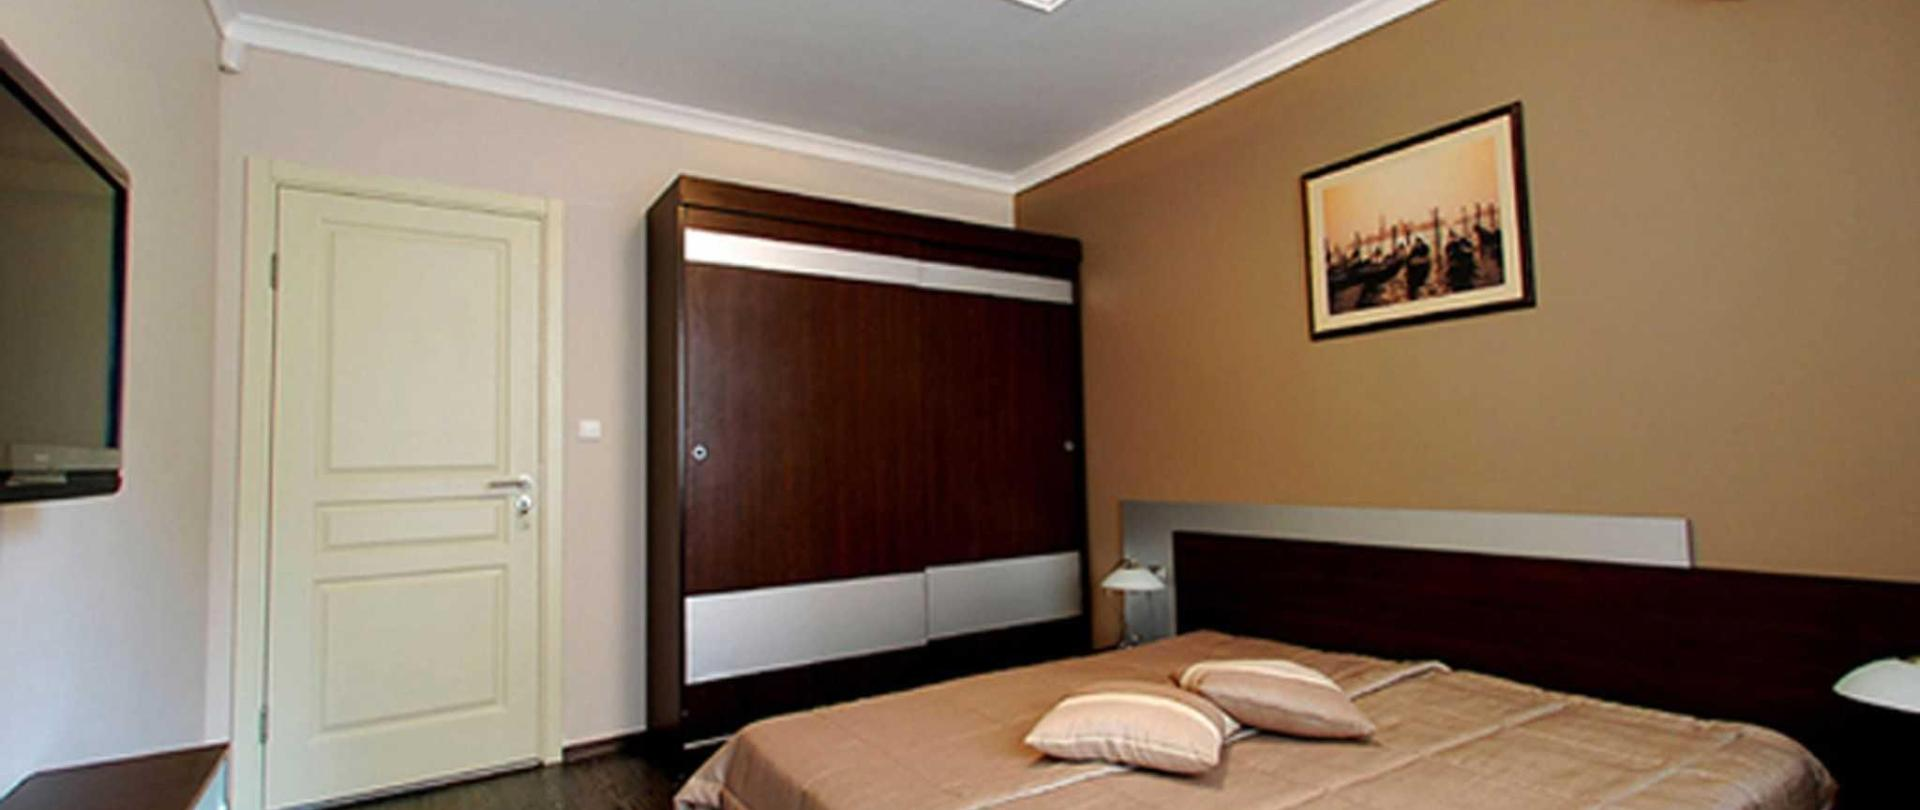 hotel_apartment_bedroom_2.jpg